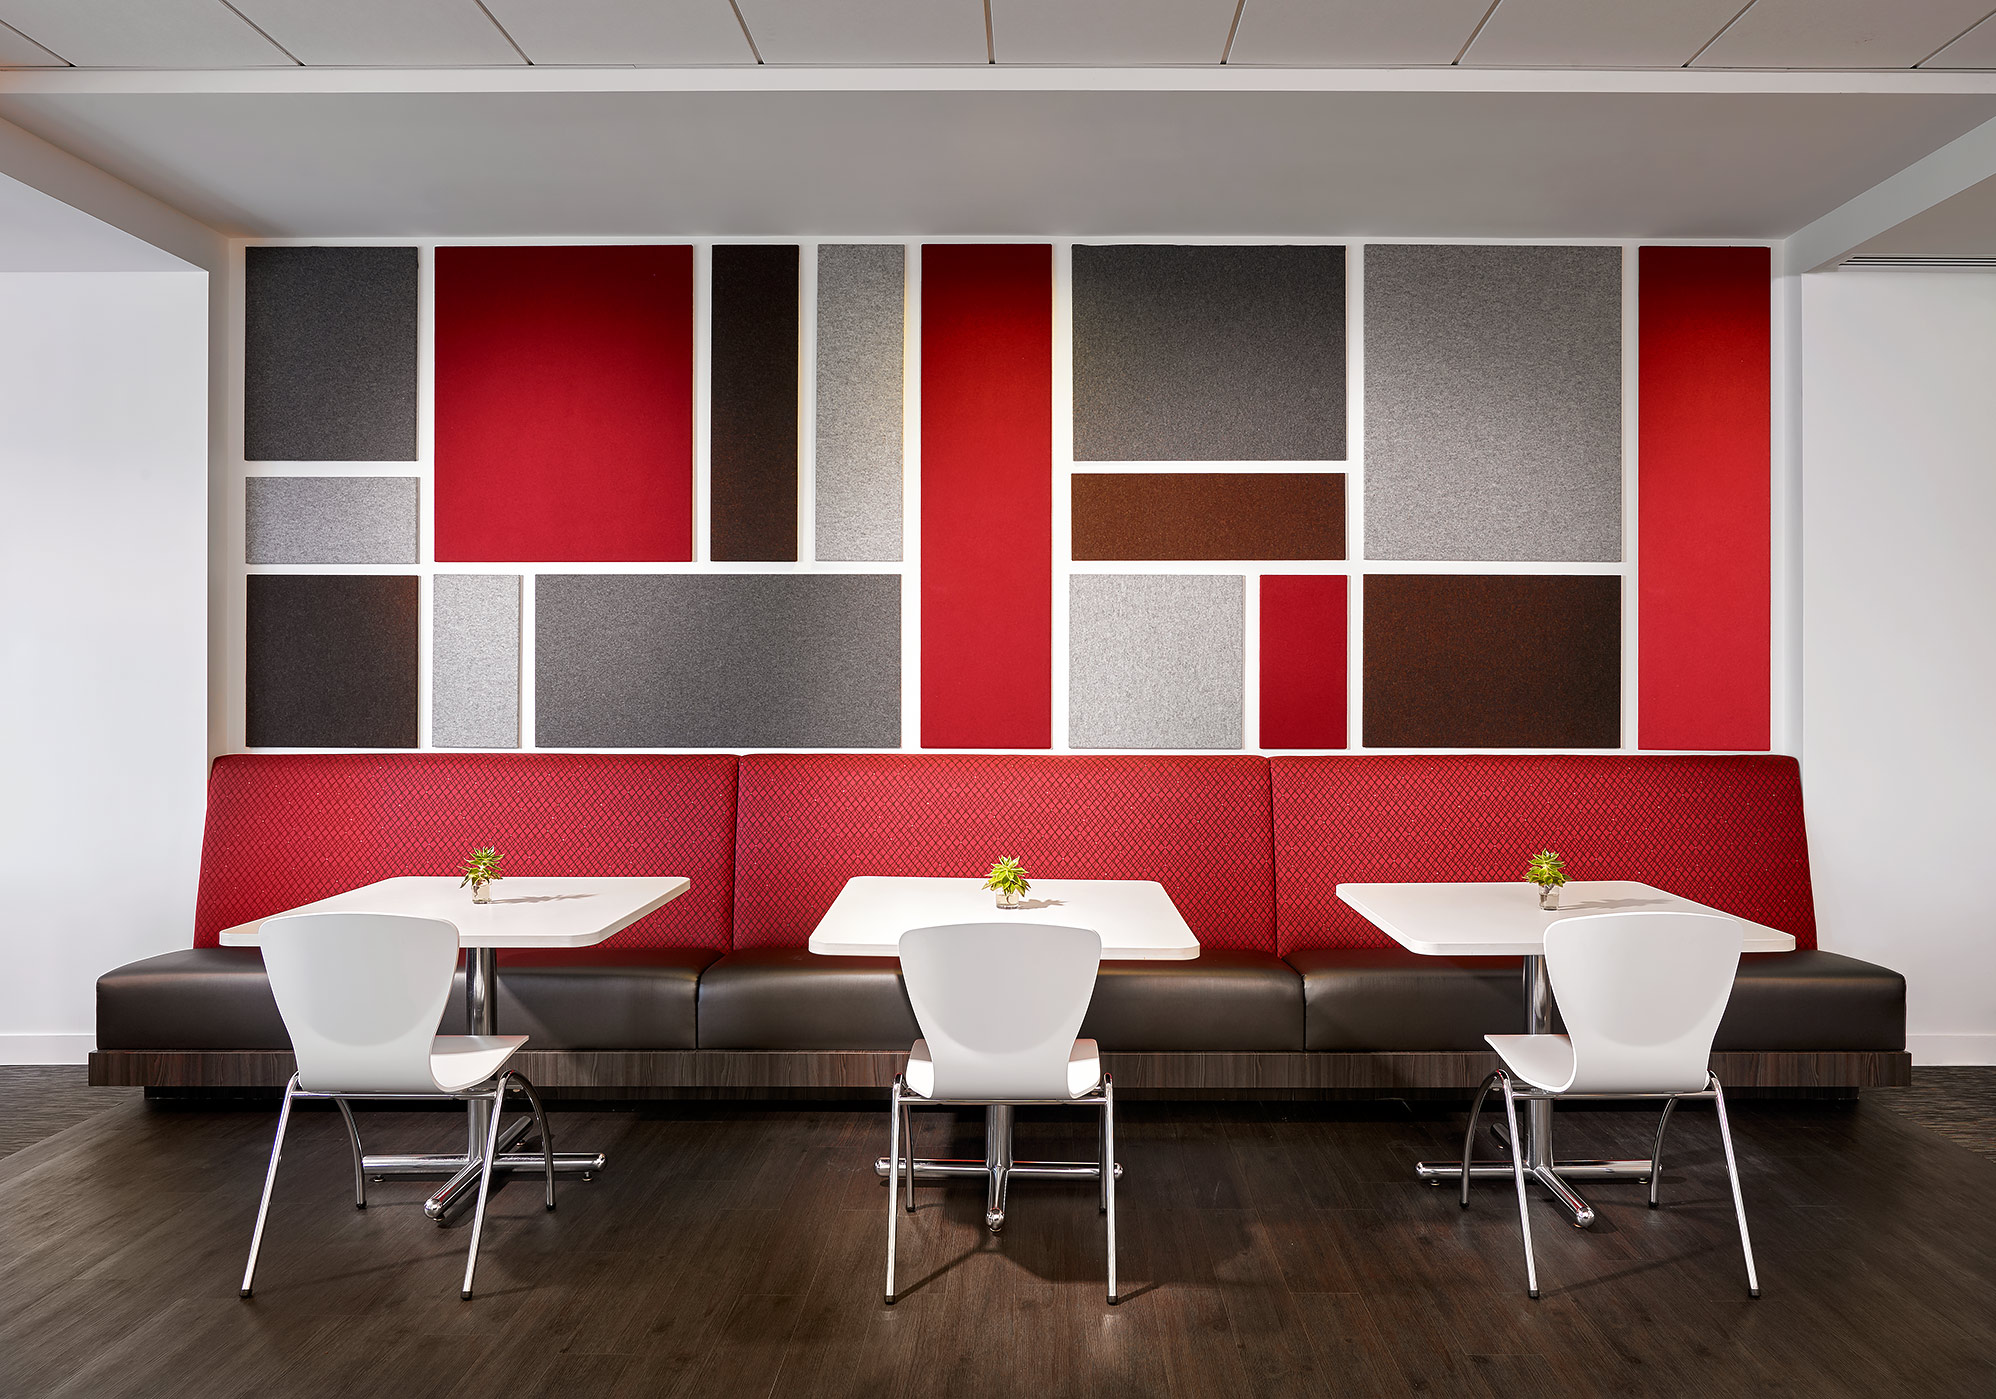 Modern-Office-Dining-Room-Mondrian-Design-Wall-Covering